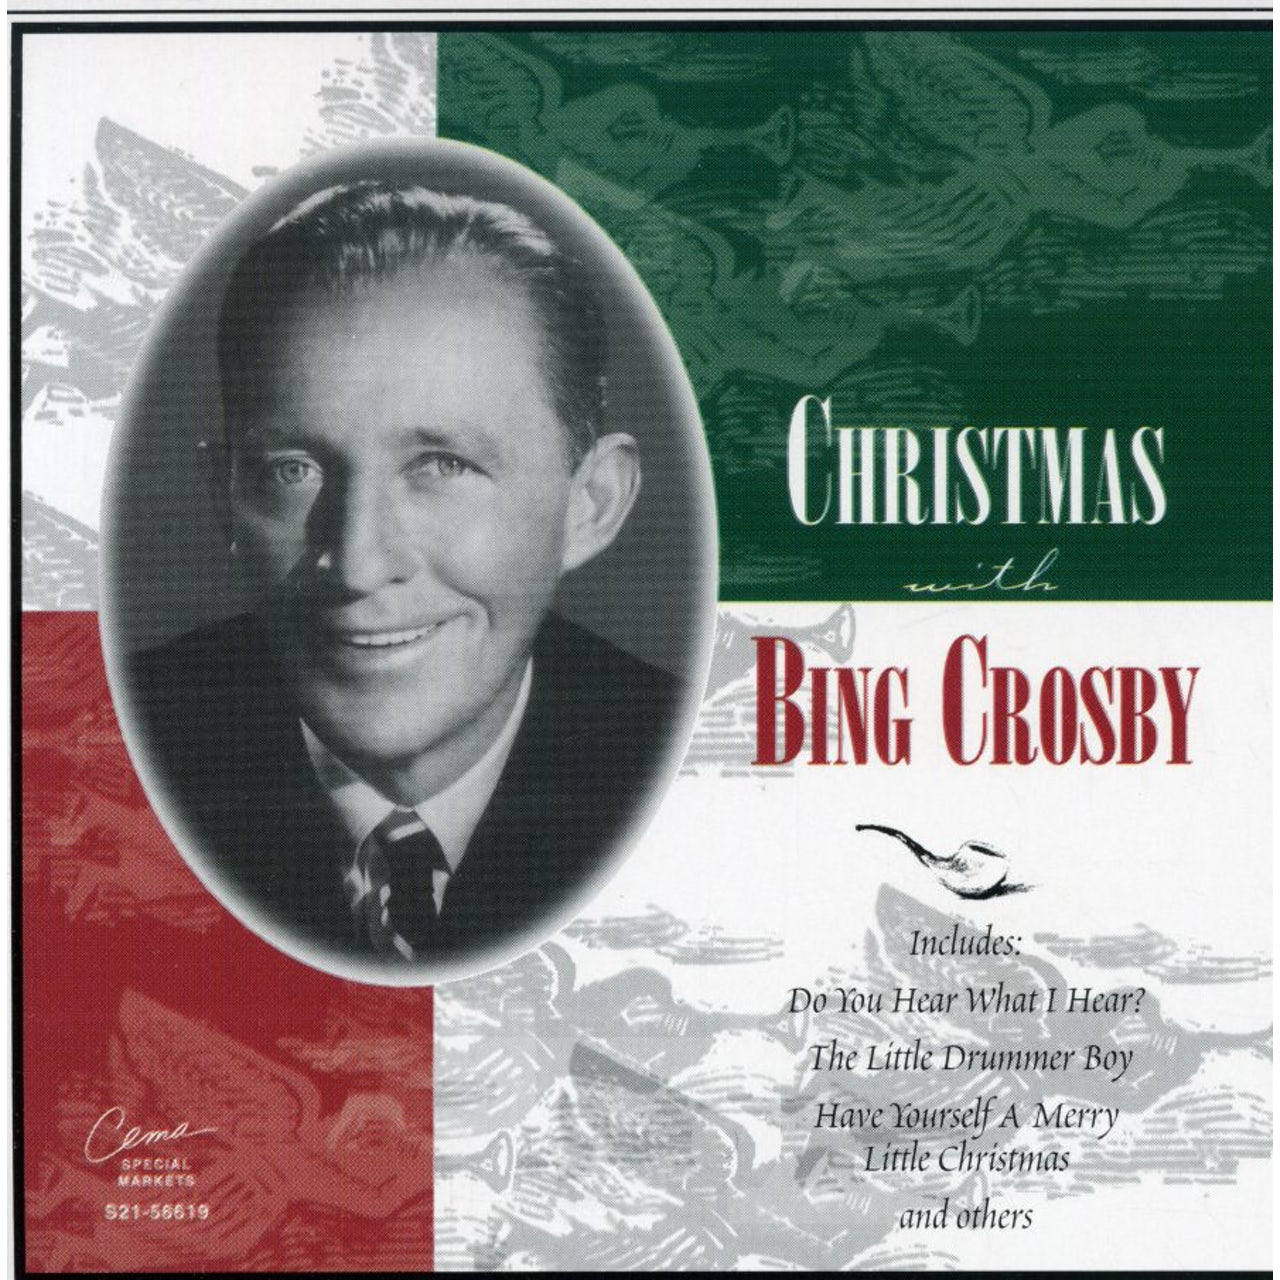 Bing Crosby Christmas Album.Christmas With Bing Crosby Cd